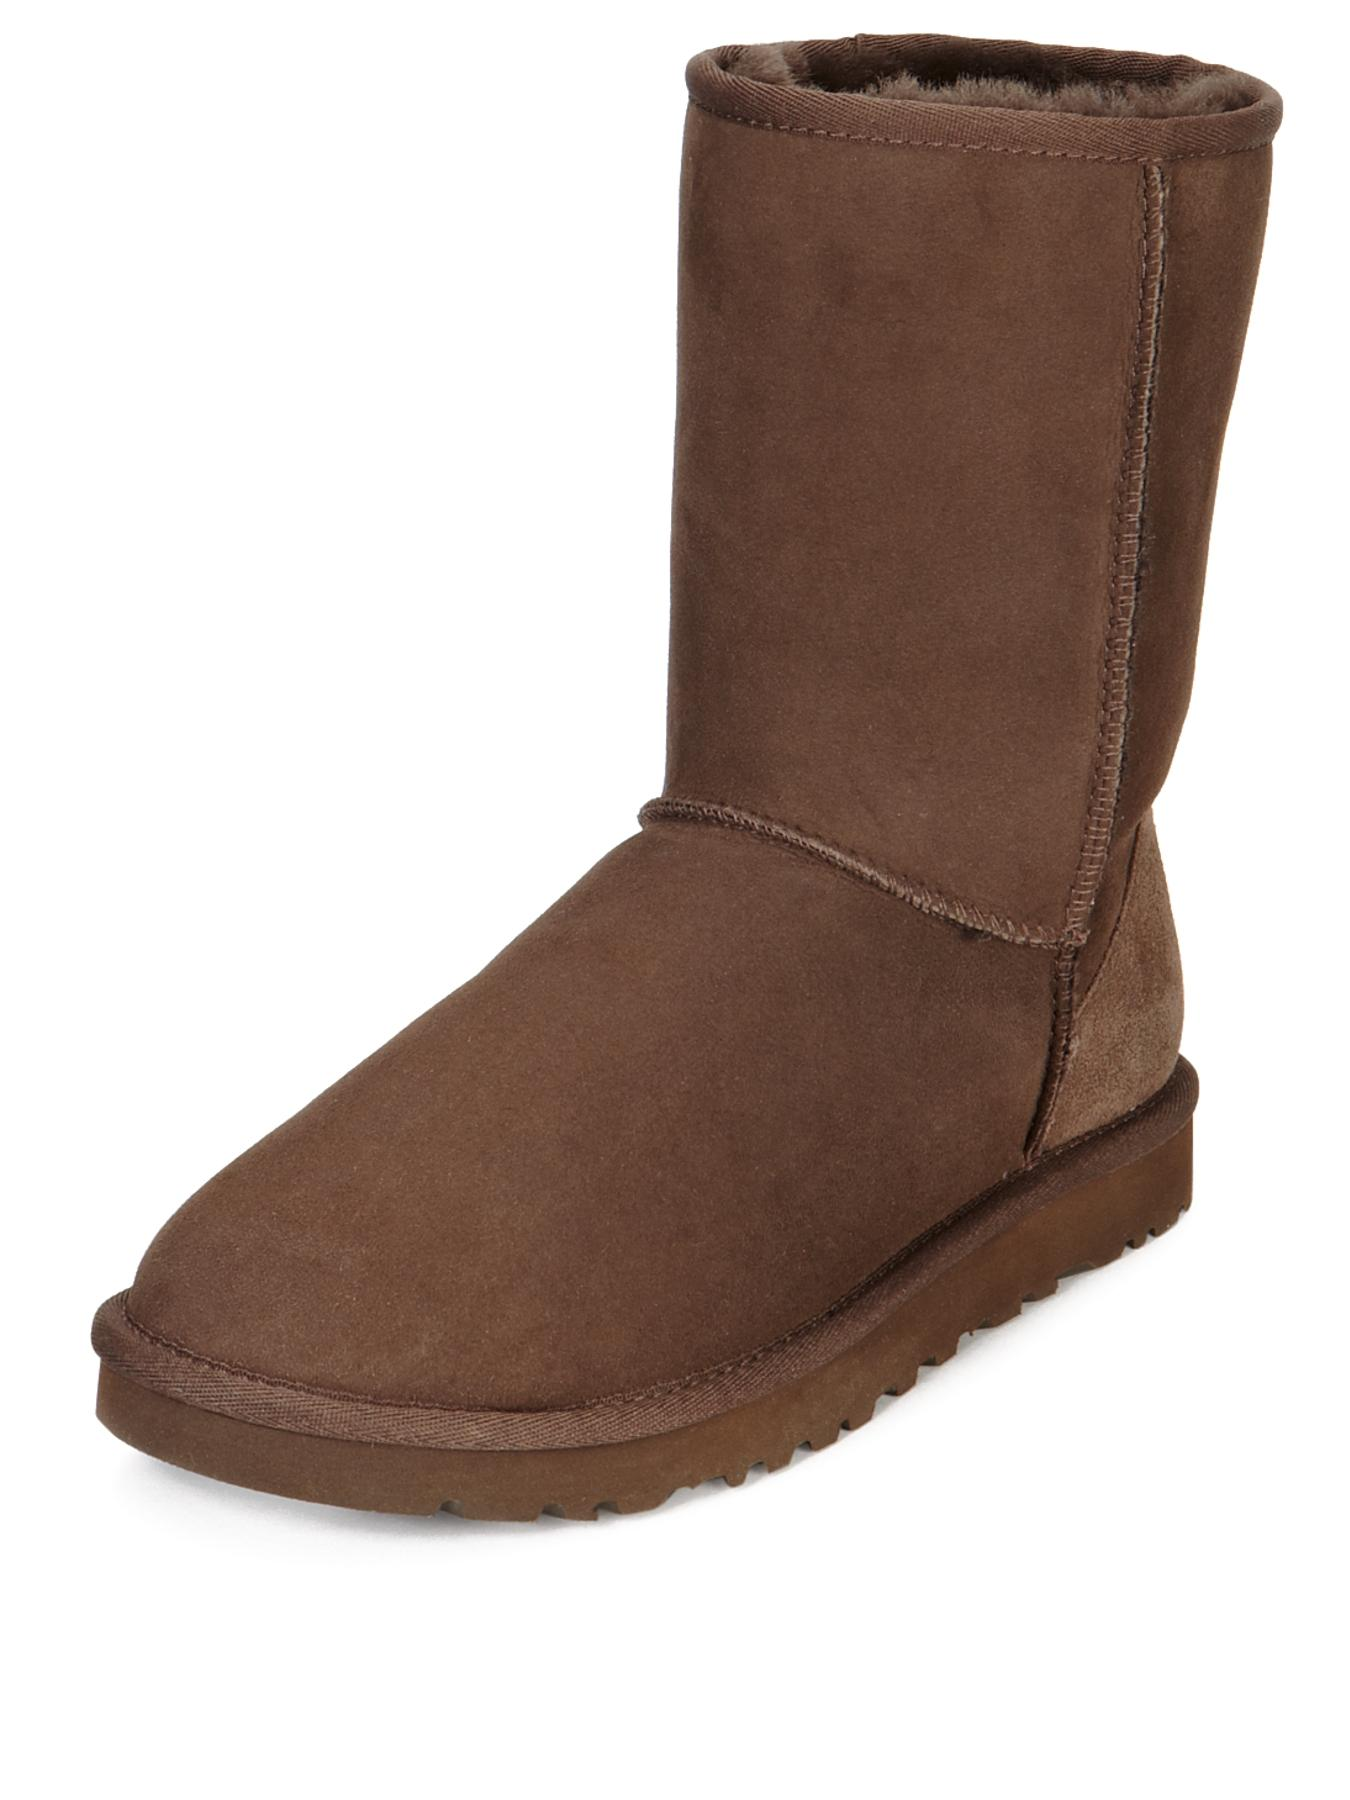 Stay warm all year round with UGG Boots and UGG Slippers. Shop Classic UGG Boots, Classic UGG Slippers, UGG Bonham Boots, UGG Dressing Gowns and much more at Inis Online now. Enjoy Free UK Delivery on orders over £